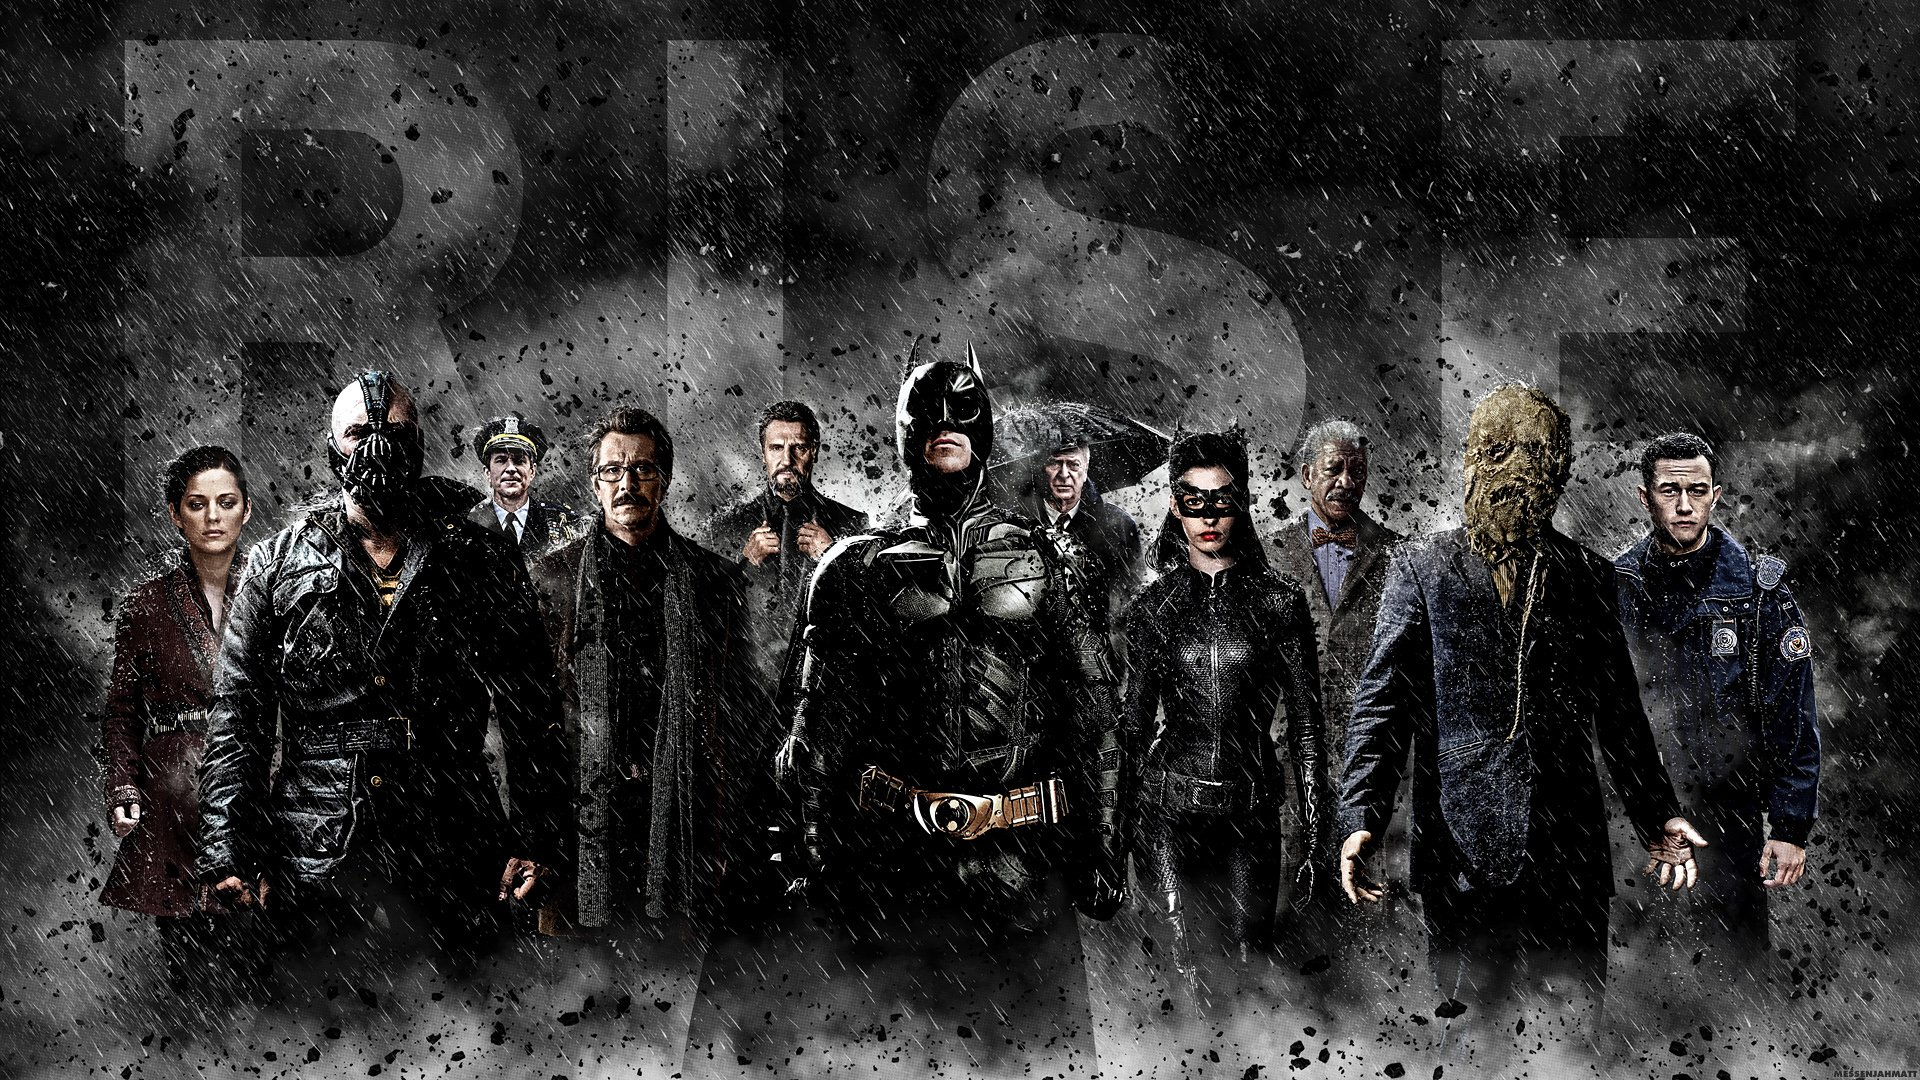 The Dark Knight Rises Banner Wallpapers HD Wallpapers 1920x1080